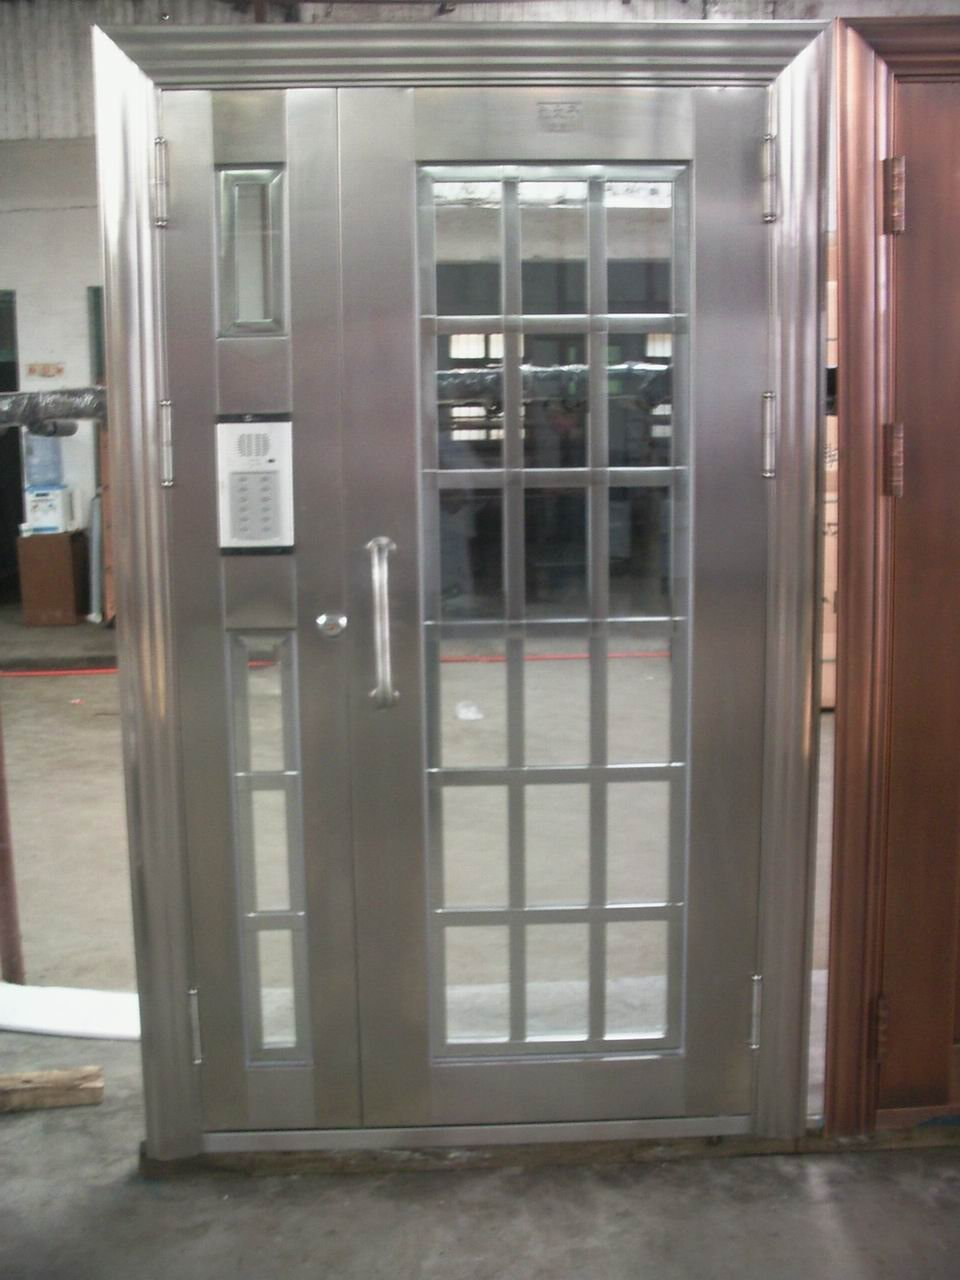 Le Meilleur Metal Exterior Doors With Solid Tempered Glass Interior Ce Mois Ci